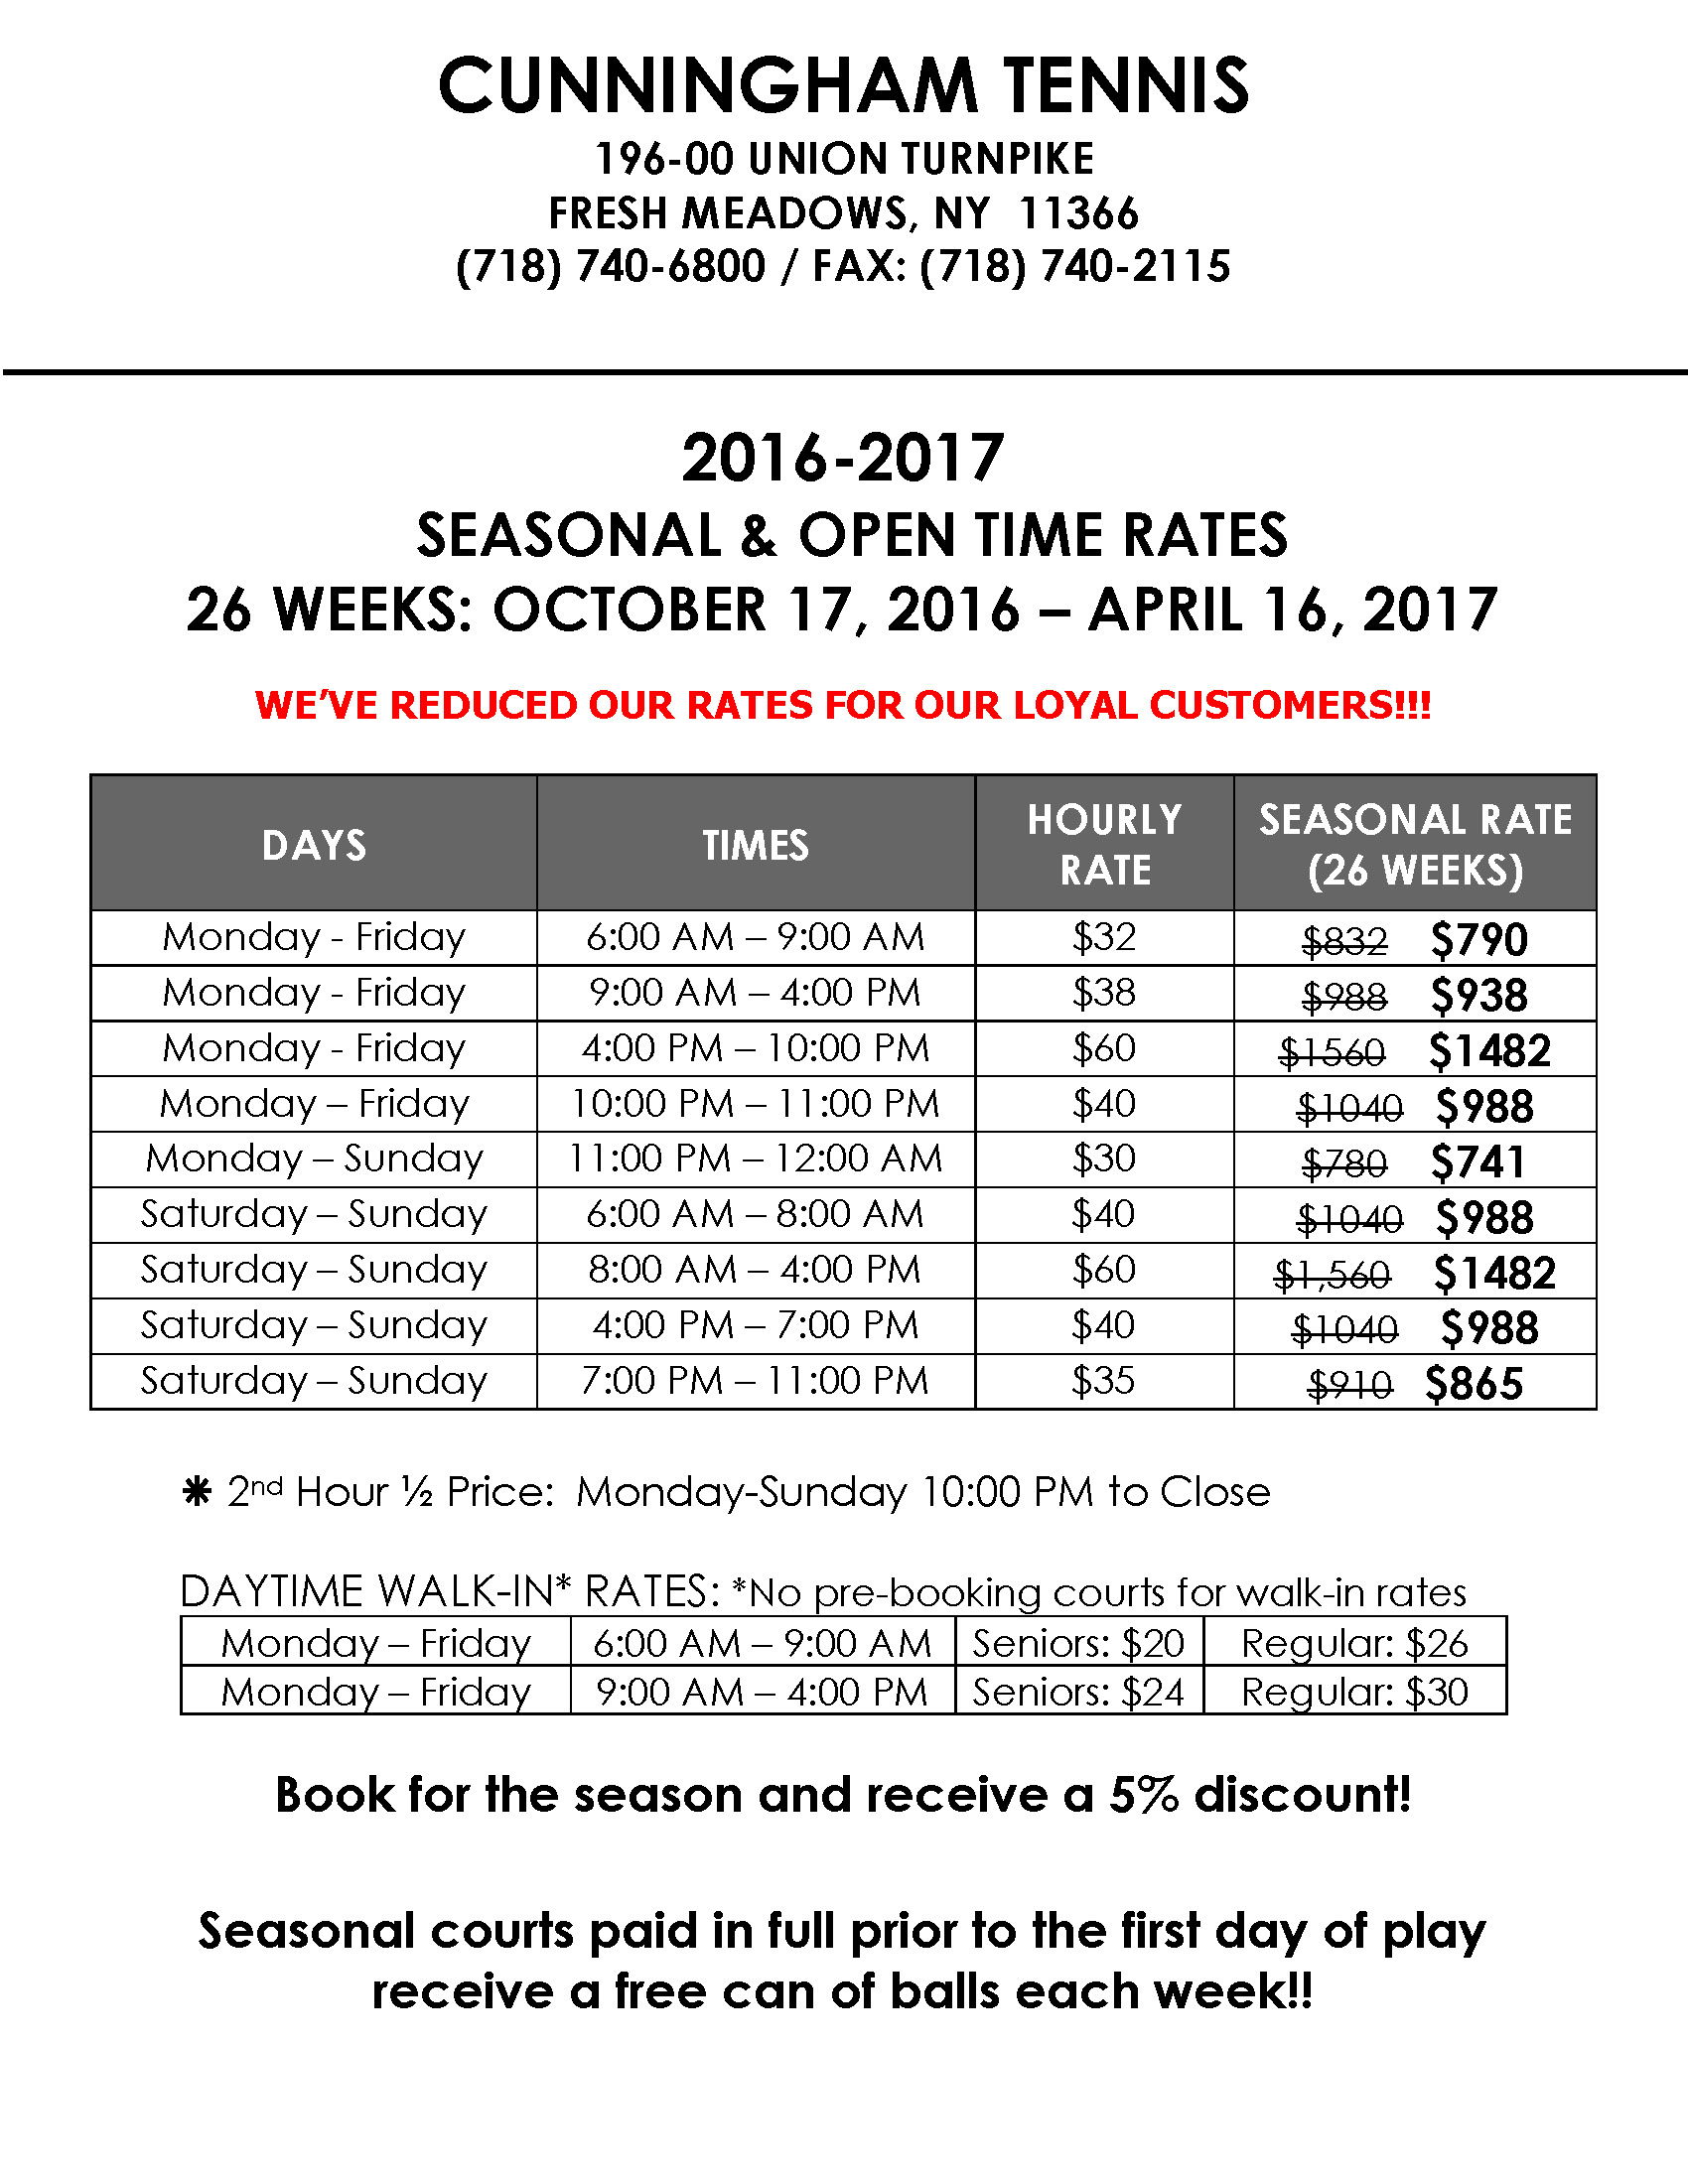 CT 2016-2017 Seasonal-Open Time Rates